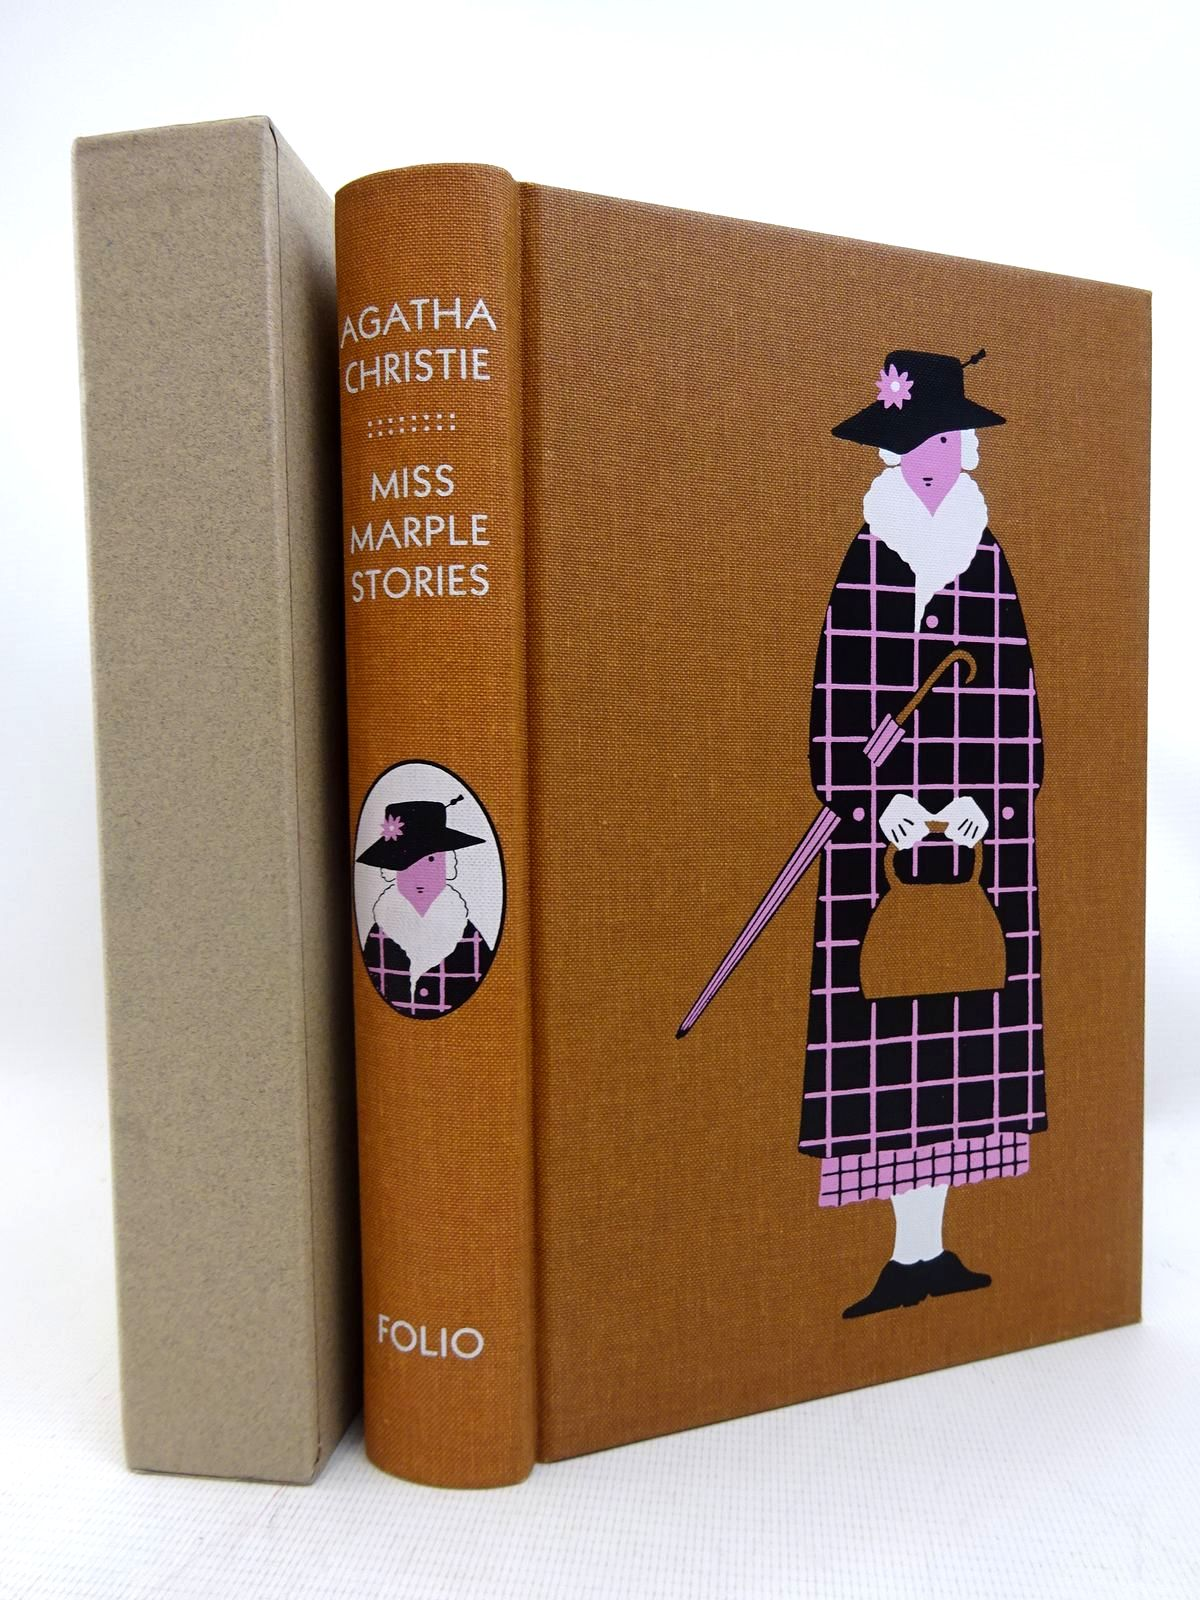 Photo of THE COMPLETE MISS MARPLE SHORT STORIES written by Christie, Agatha illustrated by Brown, Christopher published by Folio Society (STOCK CODE: 2128036)  for sale by Stella & Rose's Books